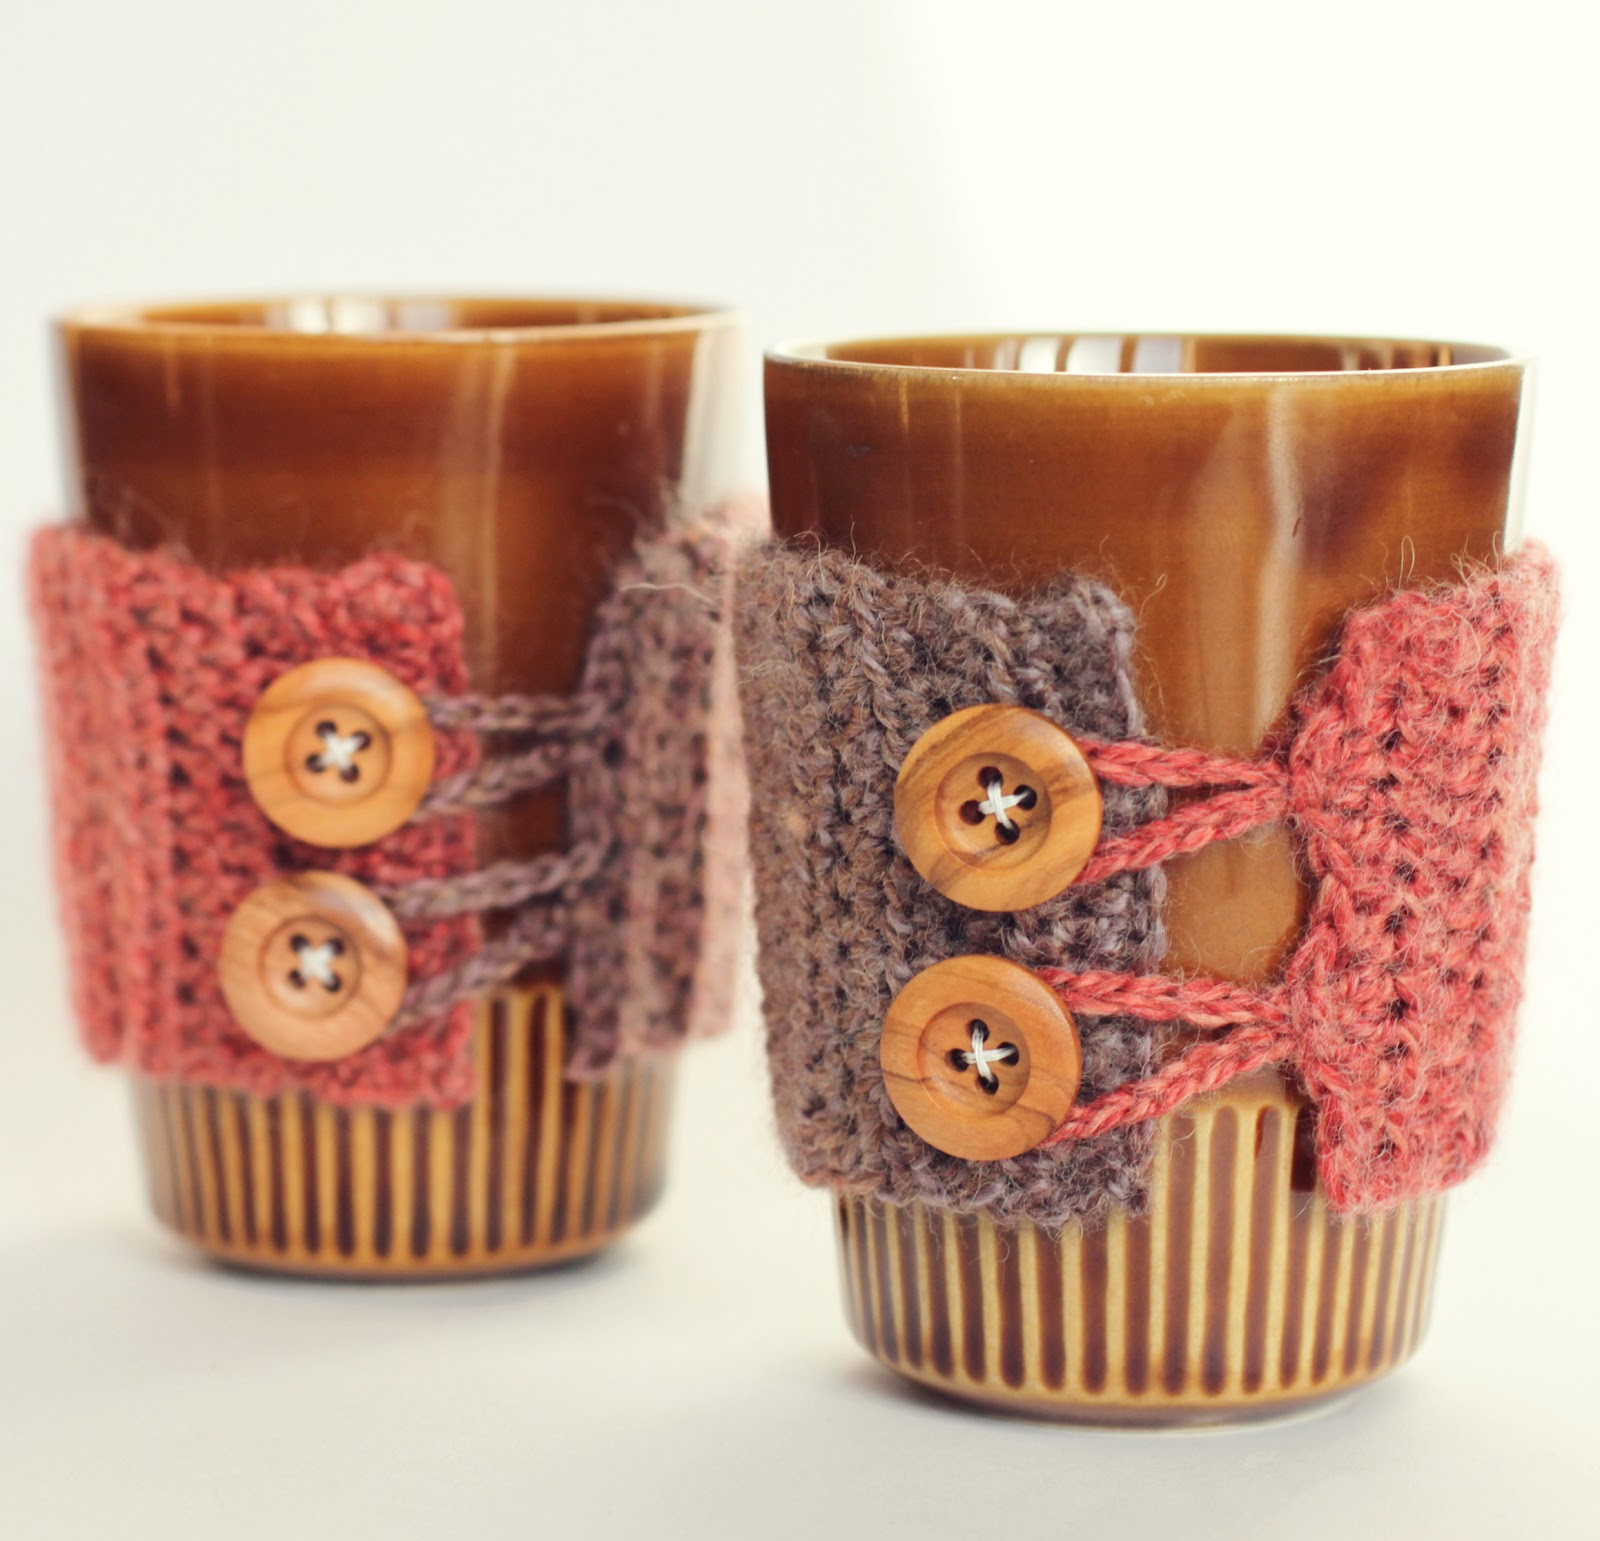 Crochet Coffee Cup Cozy Lovely L♥valizious Mug Cozy Tutorial Of Crochet Coffee Cup Cozy Elegant Wooftastic Puppy Crochet Coffee Cozy